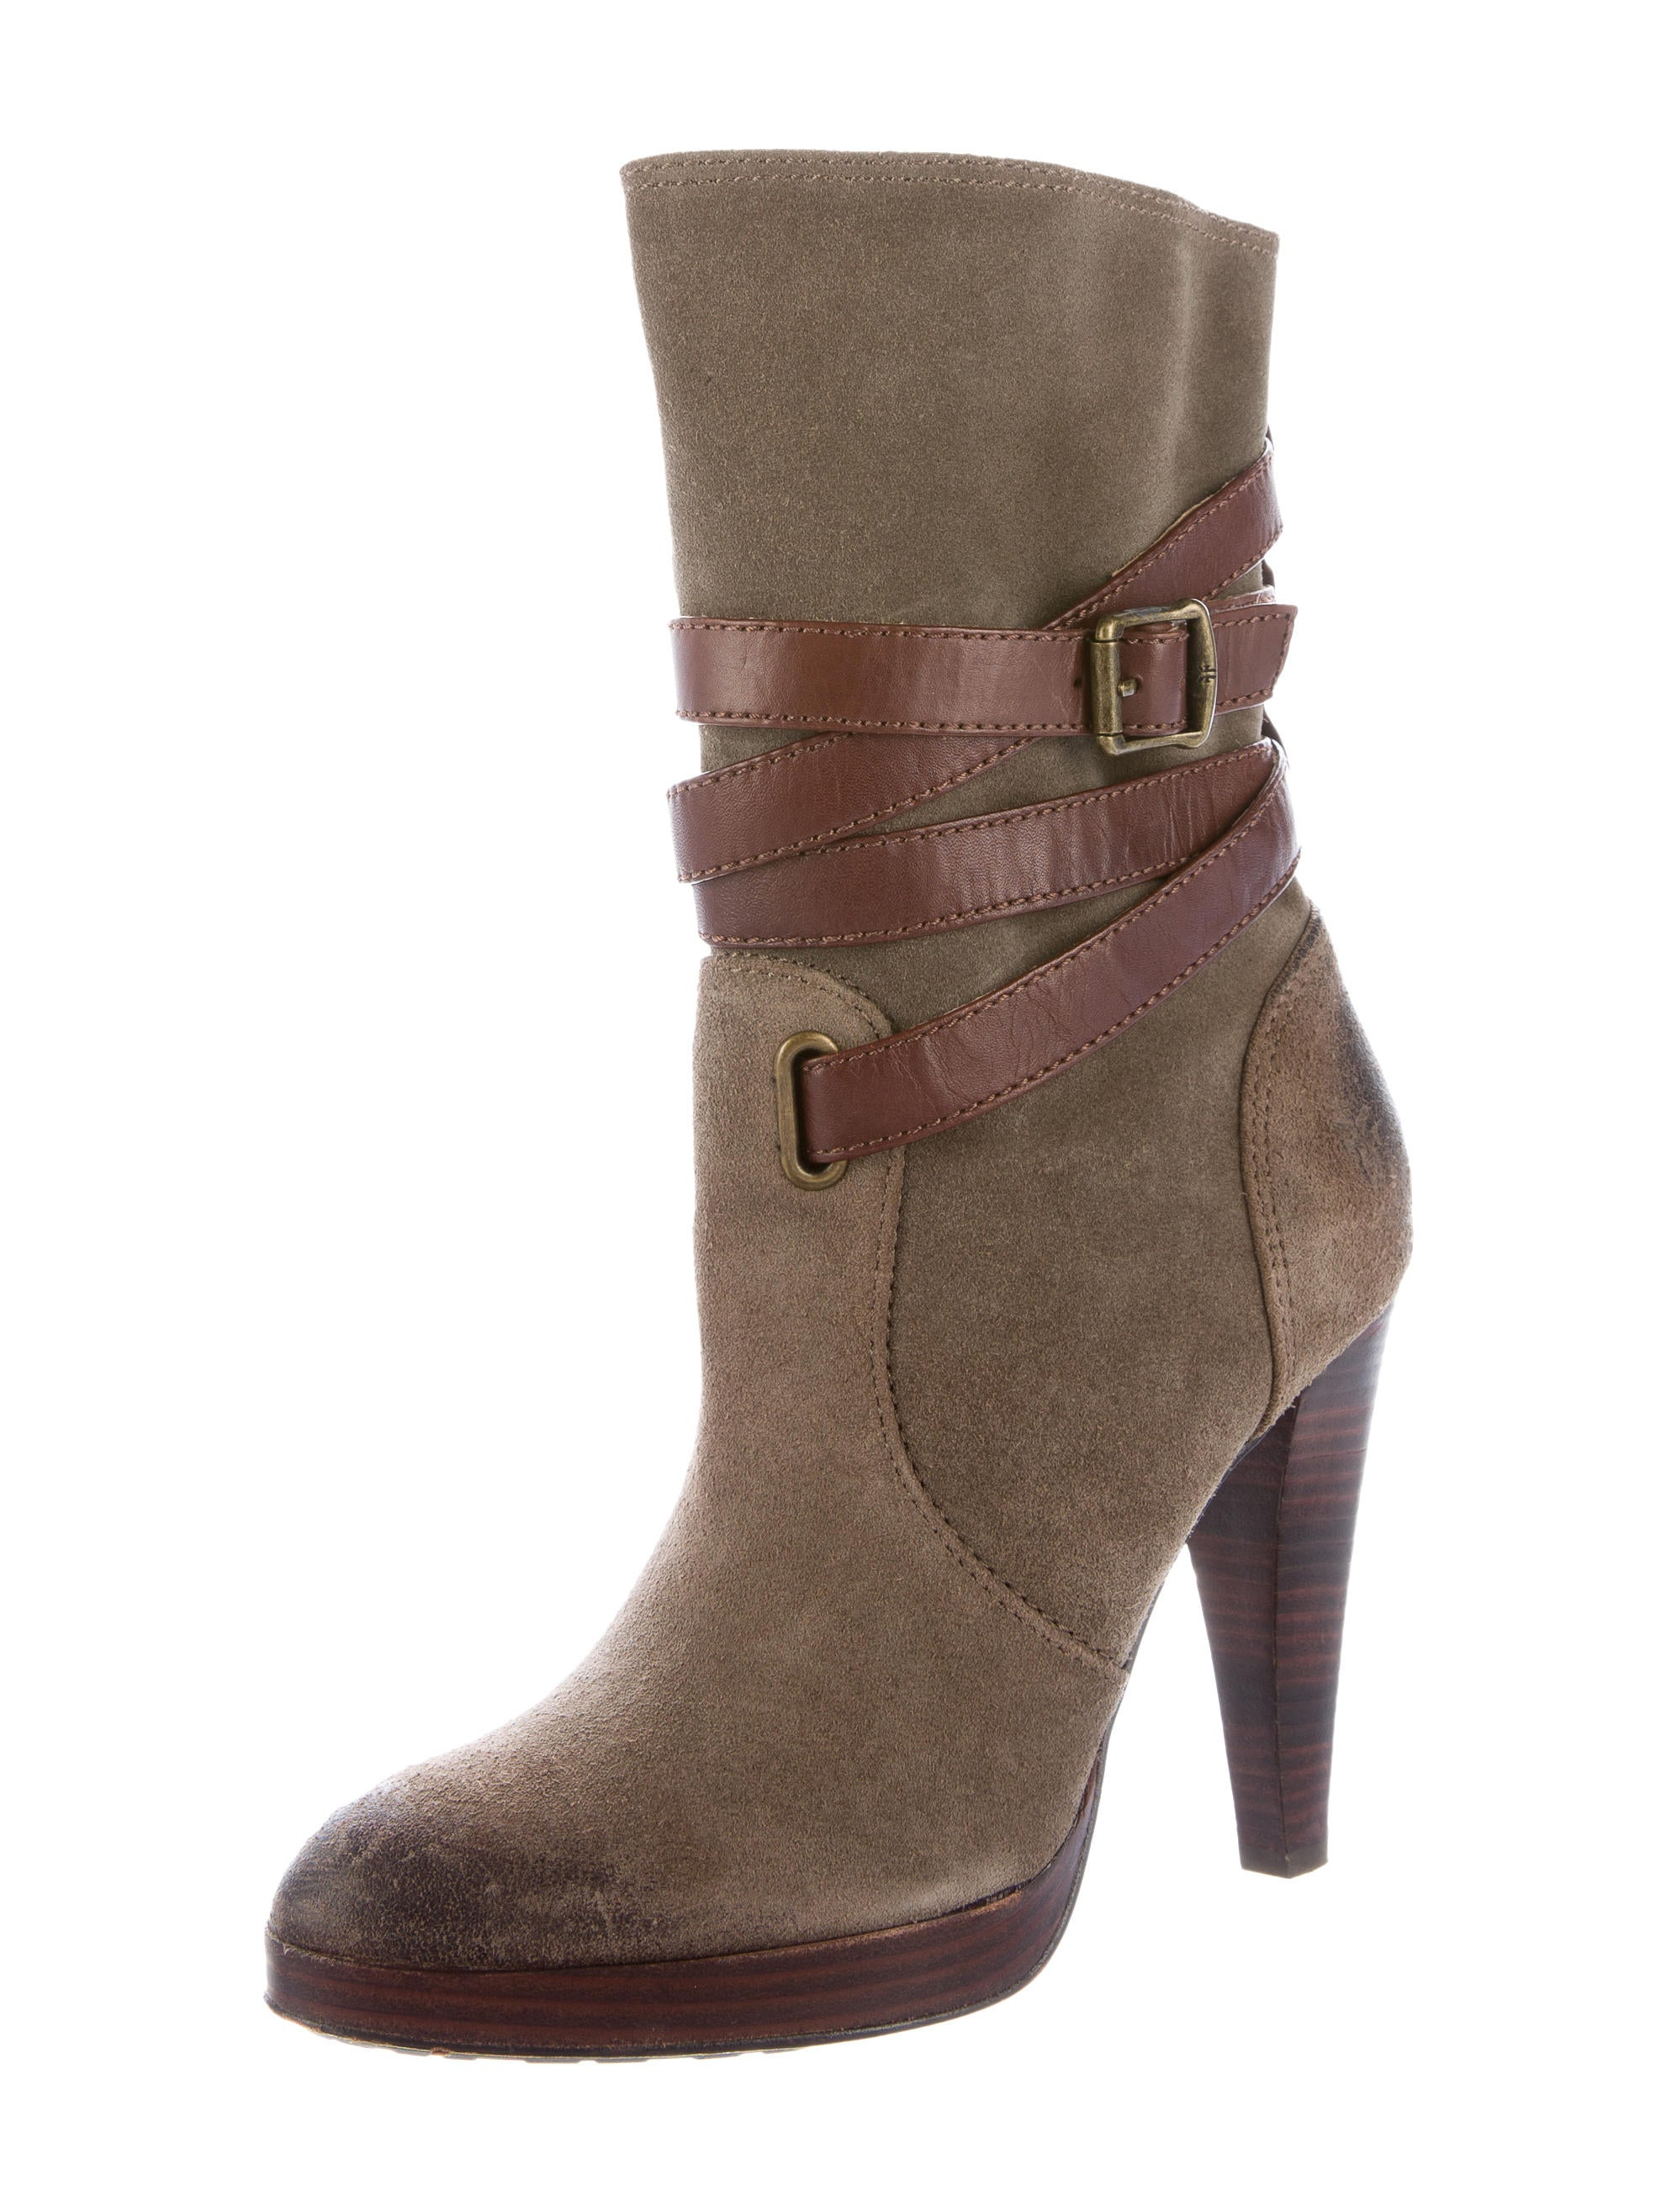 frye suede ankle boots shoes wf820857 the realreal